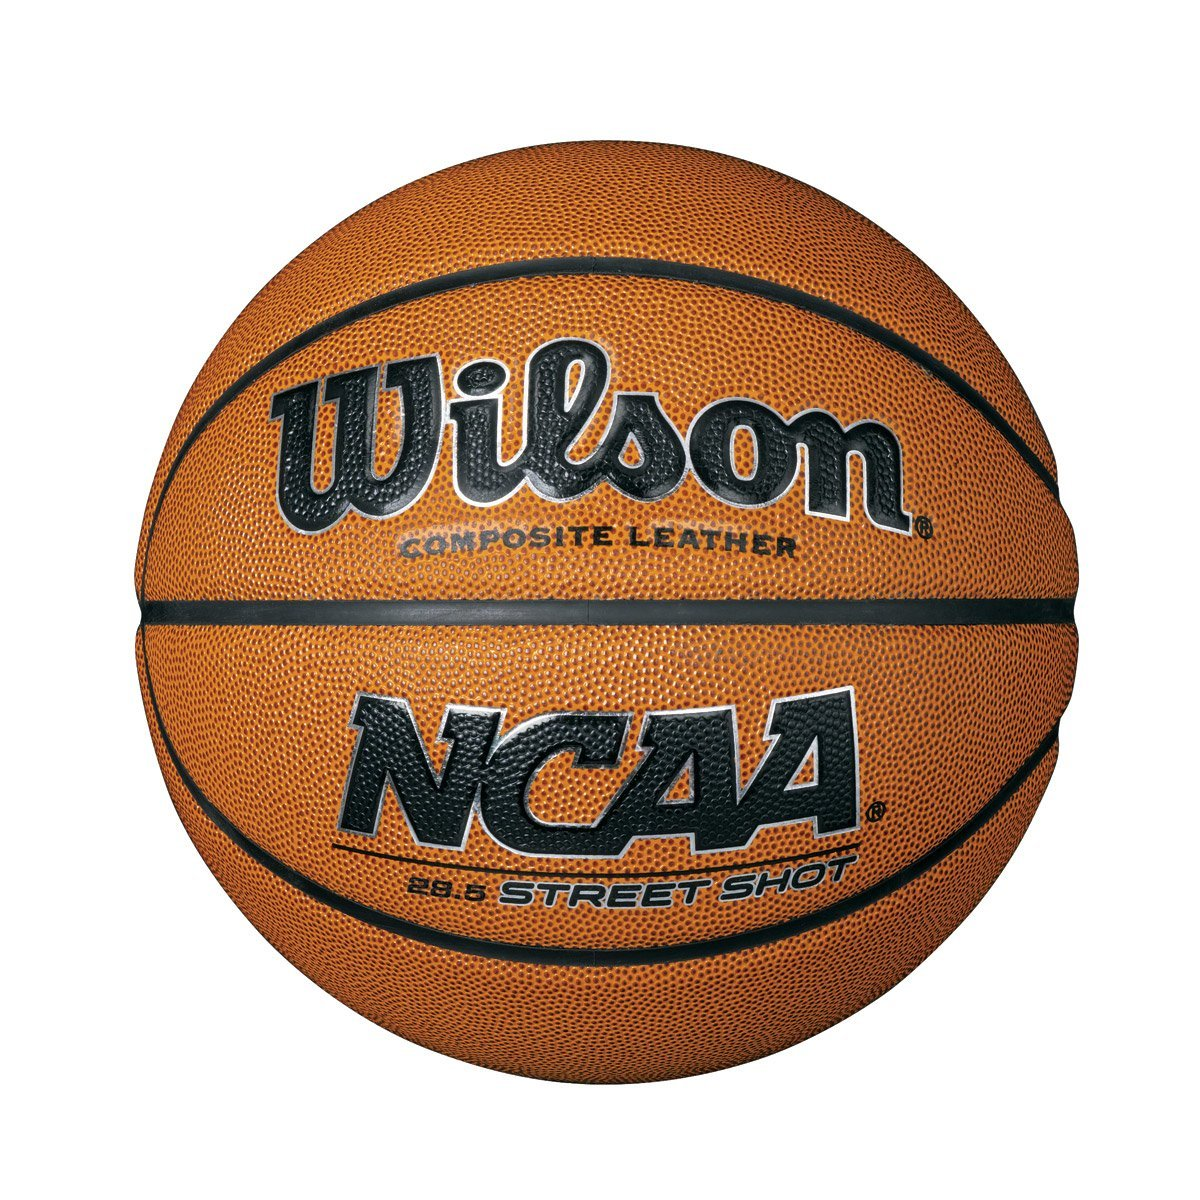 Wilson NCAA Street Shot Basketball 27.5